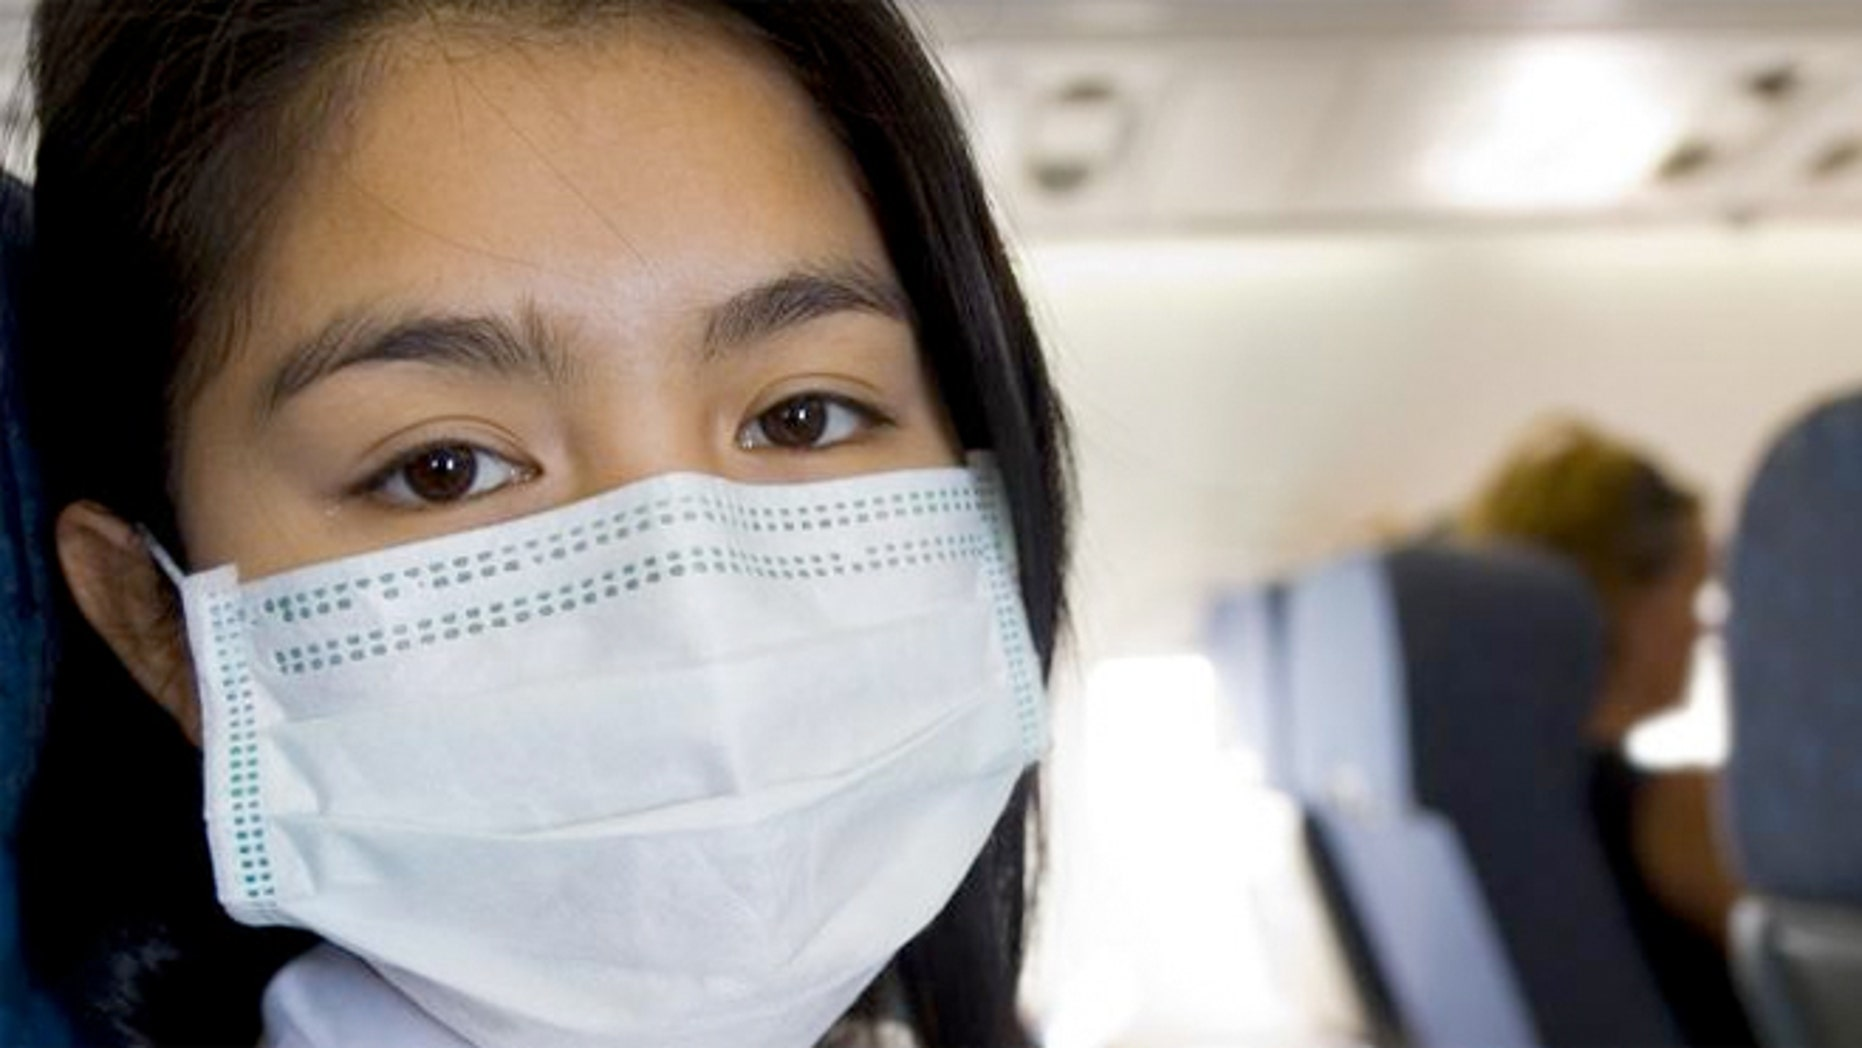 This week, a coroner in the U.K. has warned that exposure to toxic fumes in plane cabins pose a health risk to frequent fliers and aircrew.